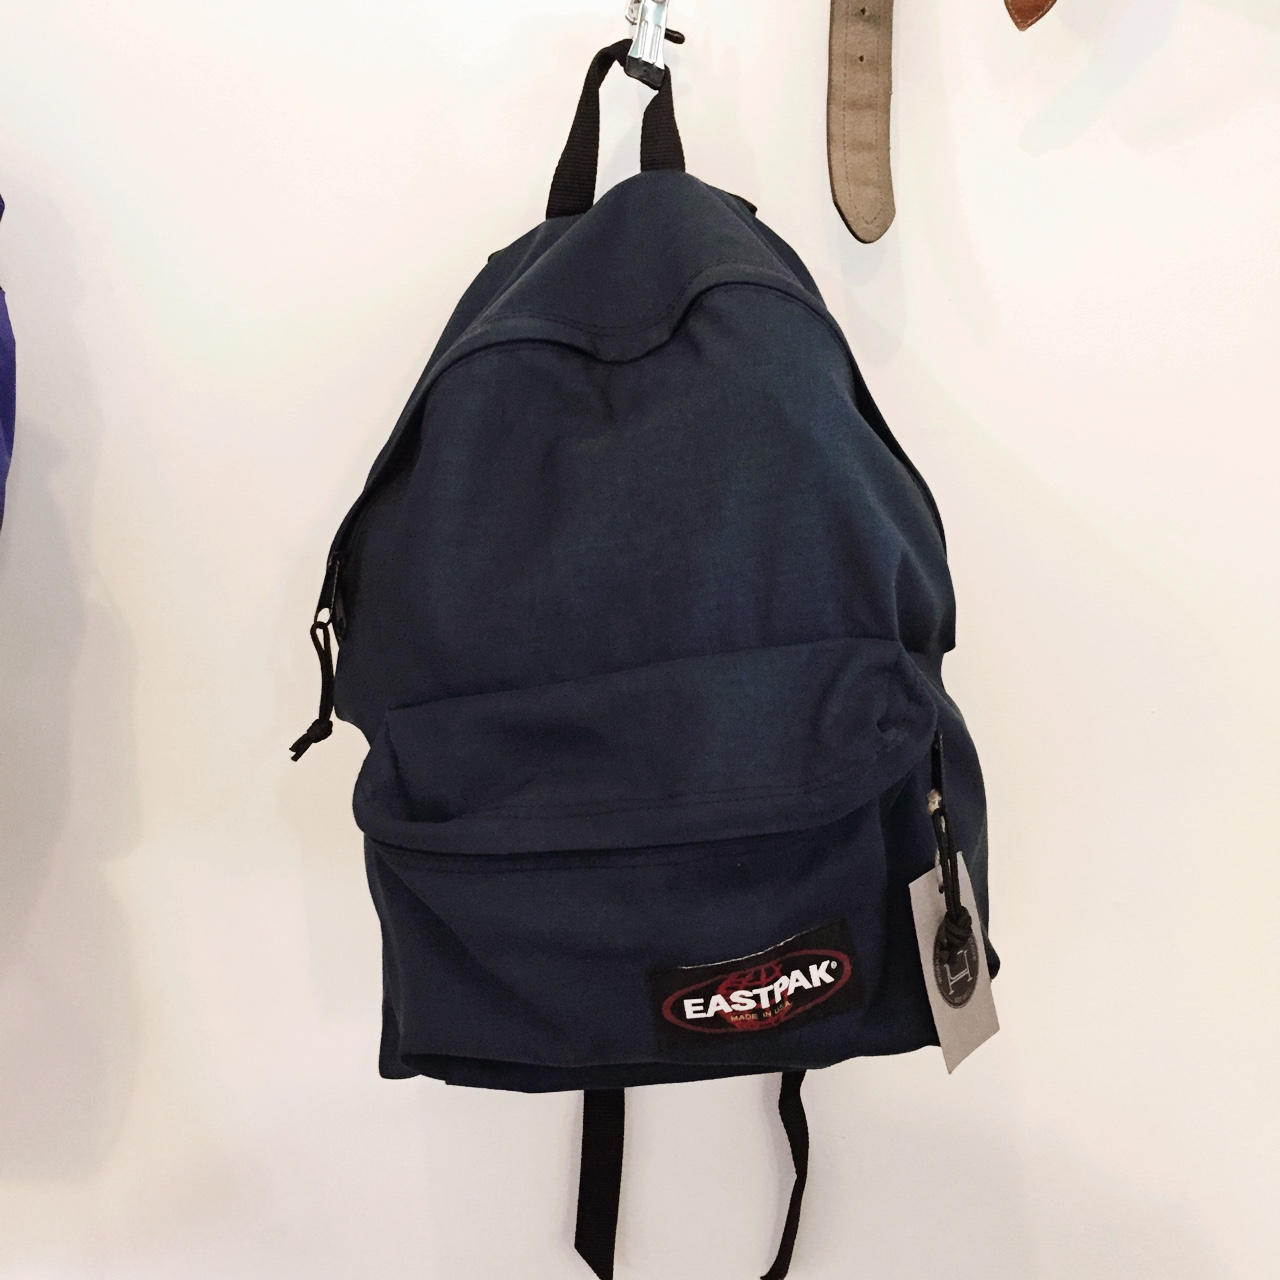 Vintage 90s Eastpak backpack in navy blue. Standard size     - Depop